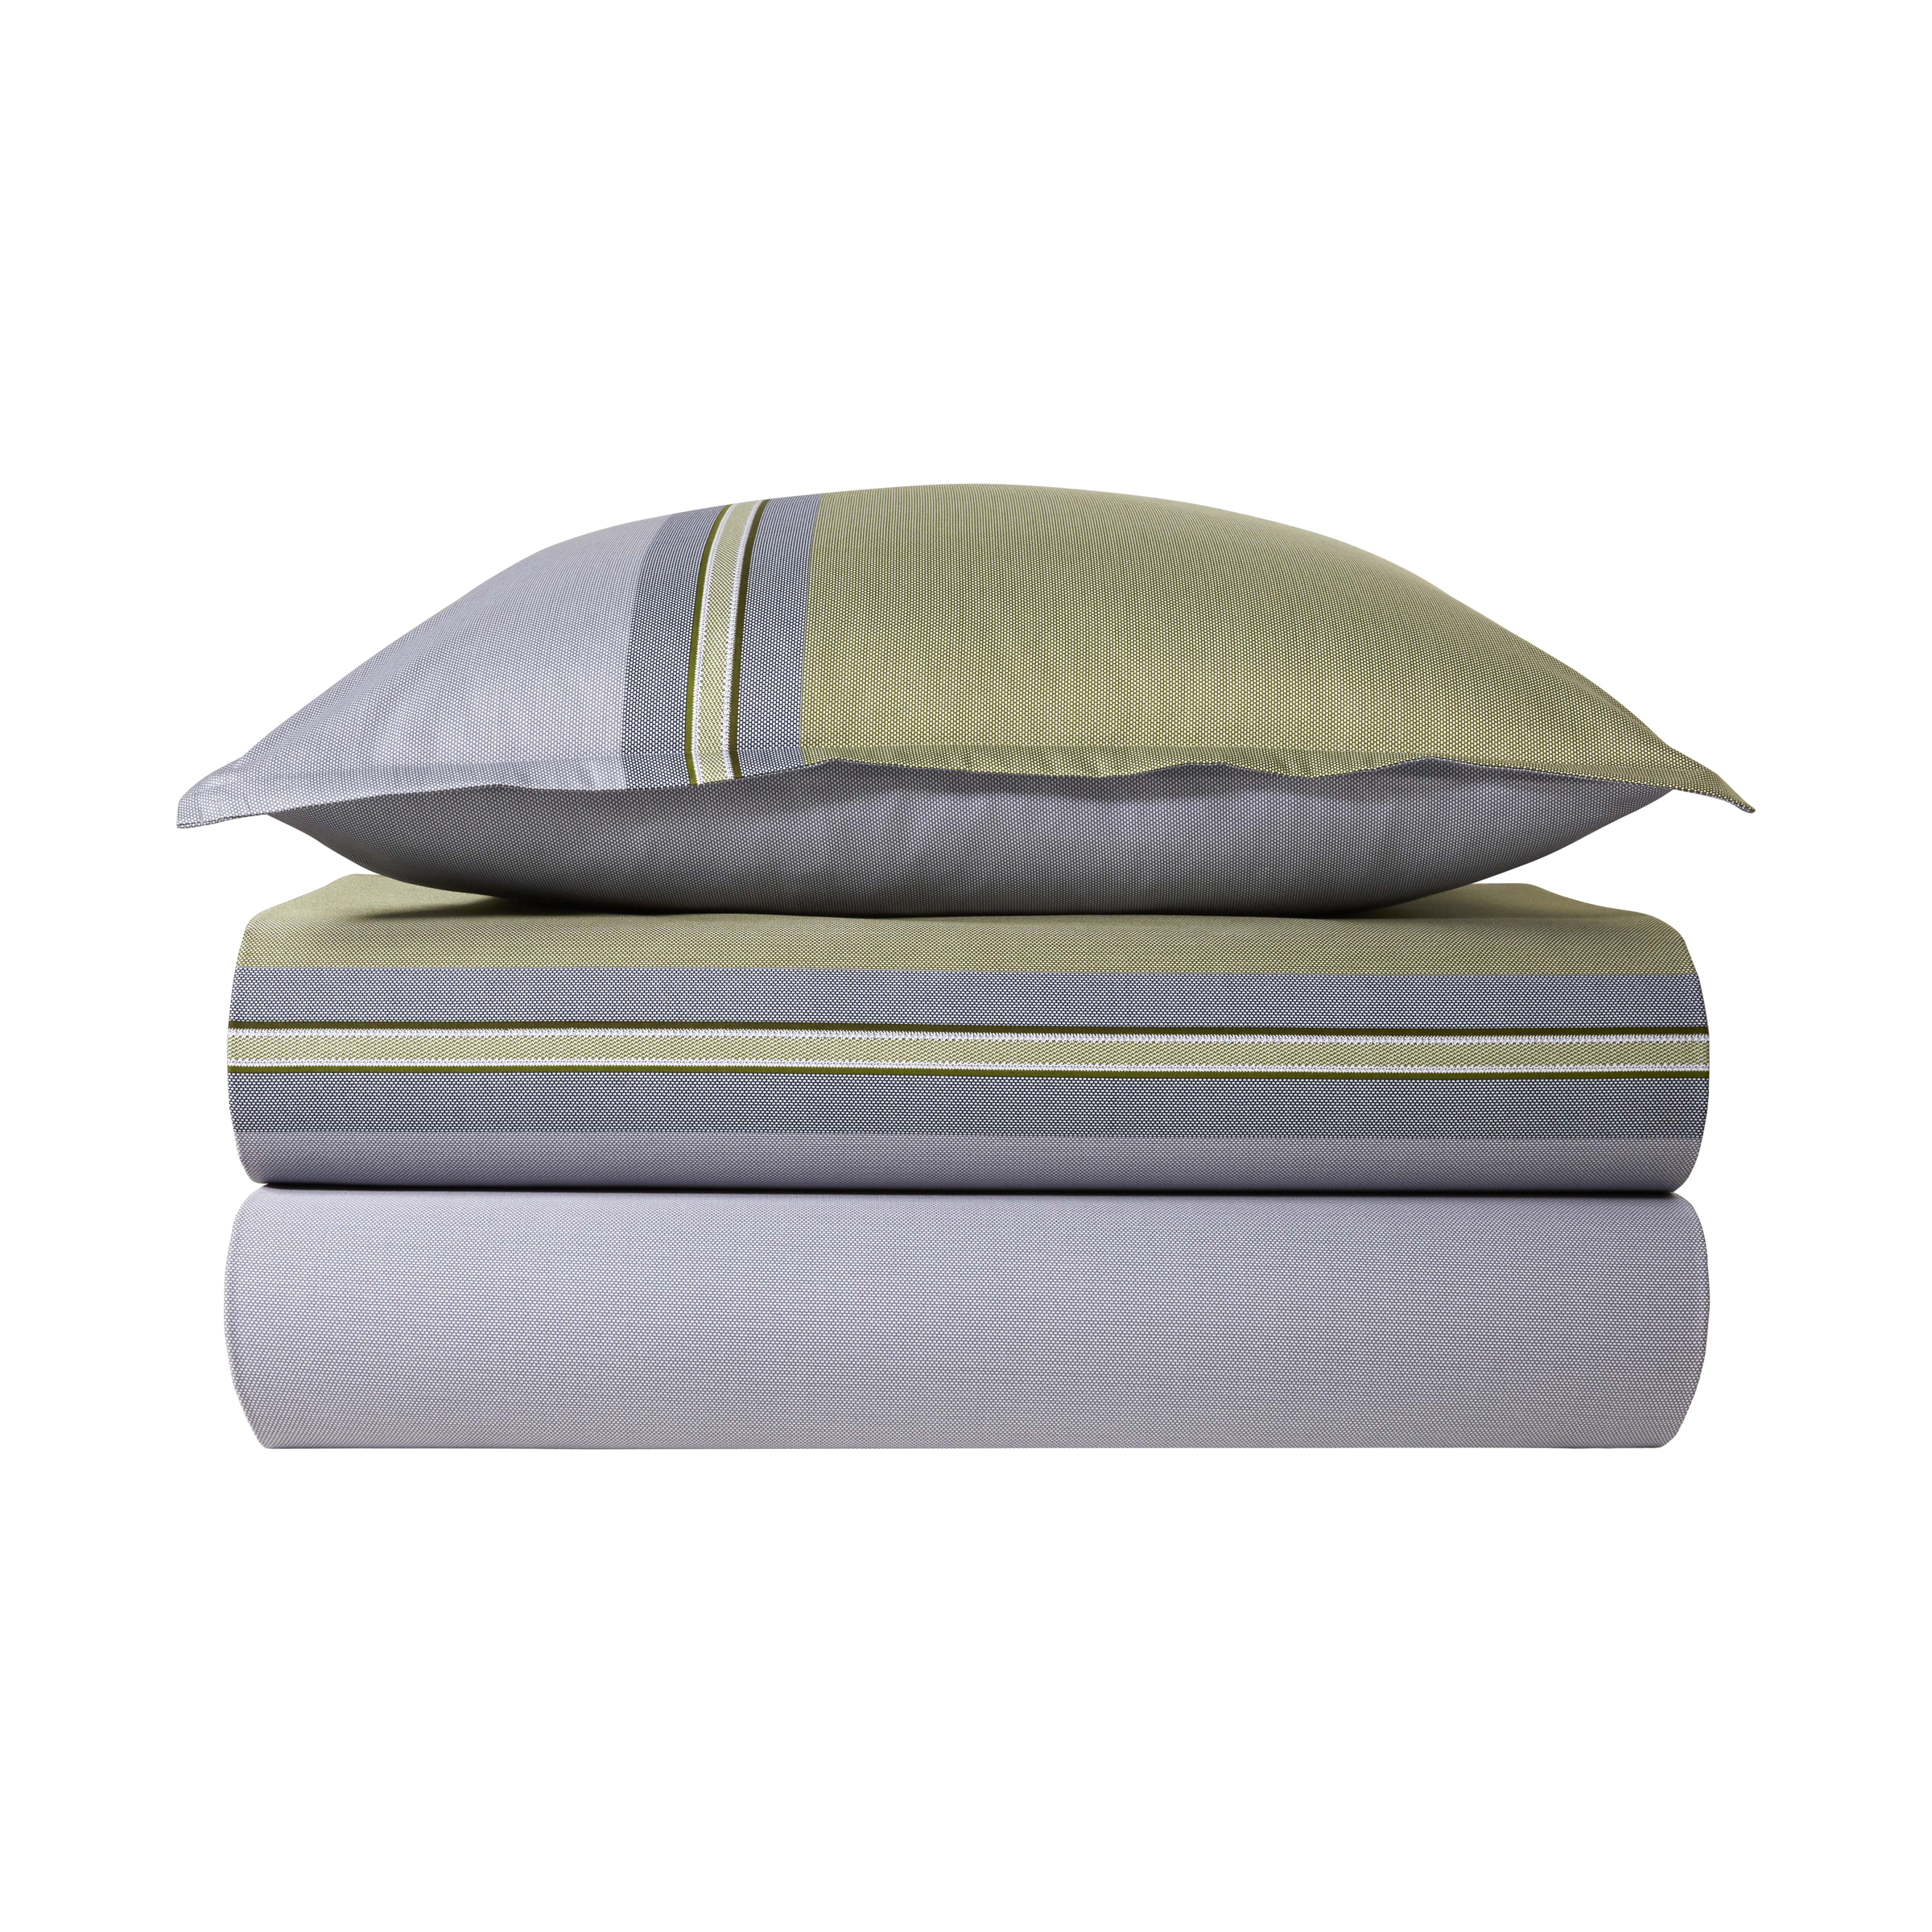 235261 - 2 - Duvet cover PADDY khaki - Boss Home.jpg